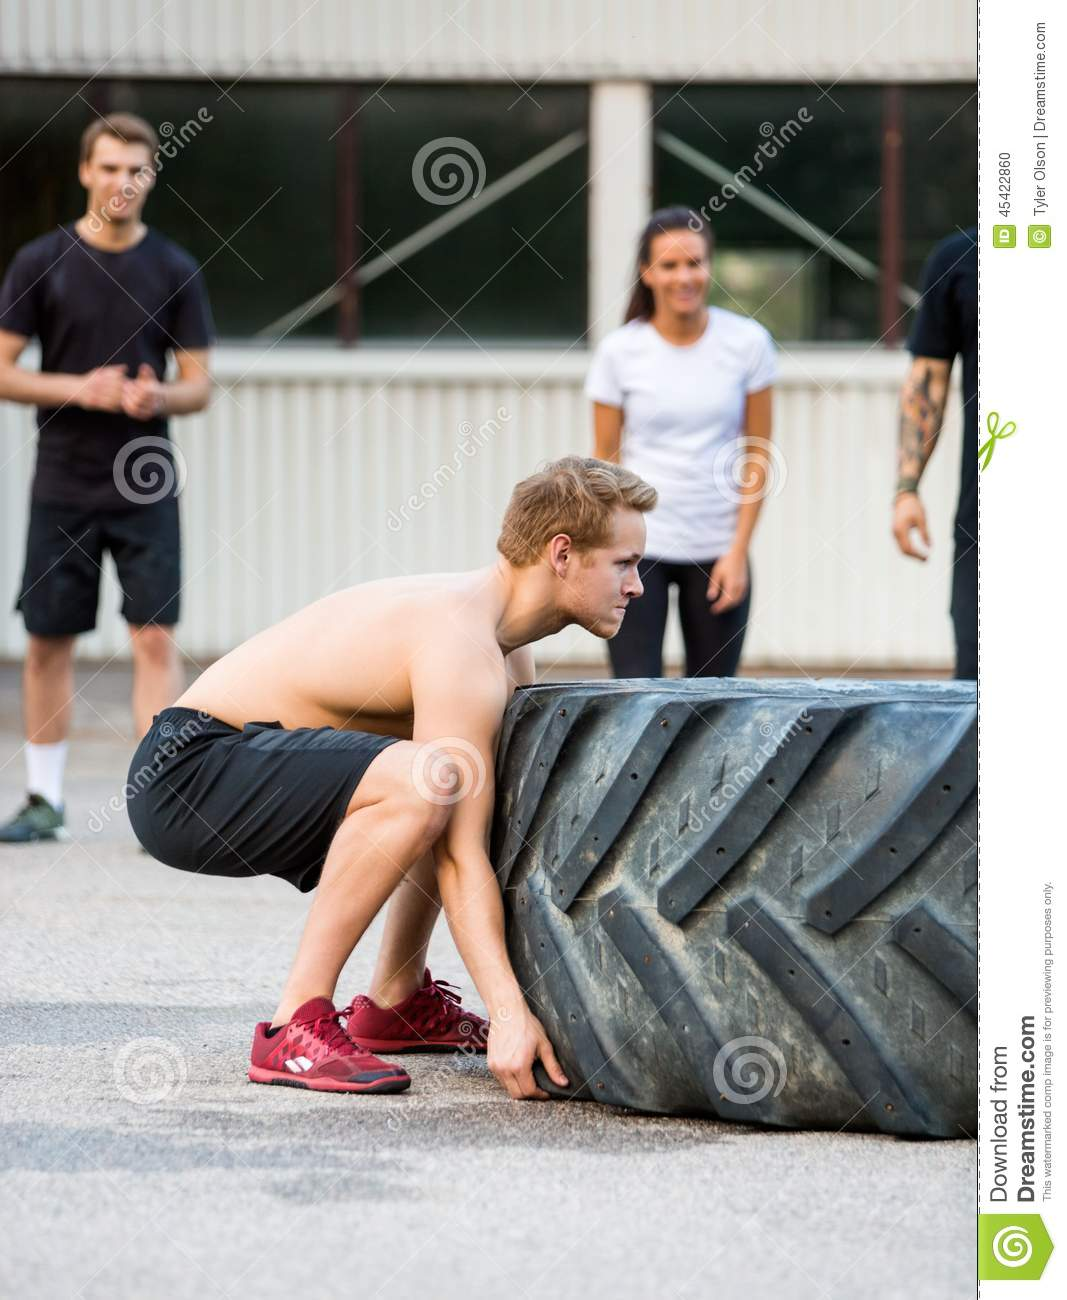 Amino Z Team Womens Weight Lifting Bodybuilding Gym: Male Athlete Flipping Tractor Tire Stock Photo